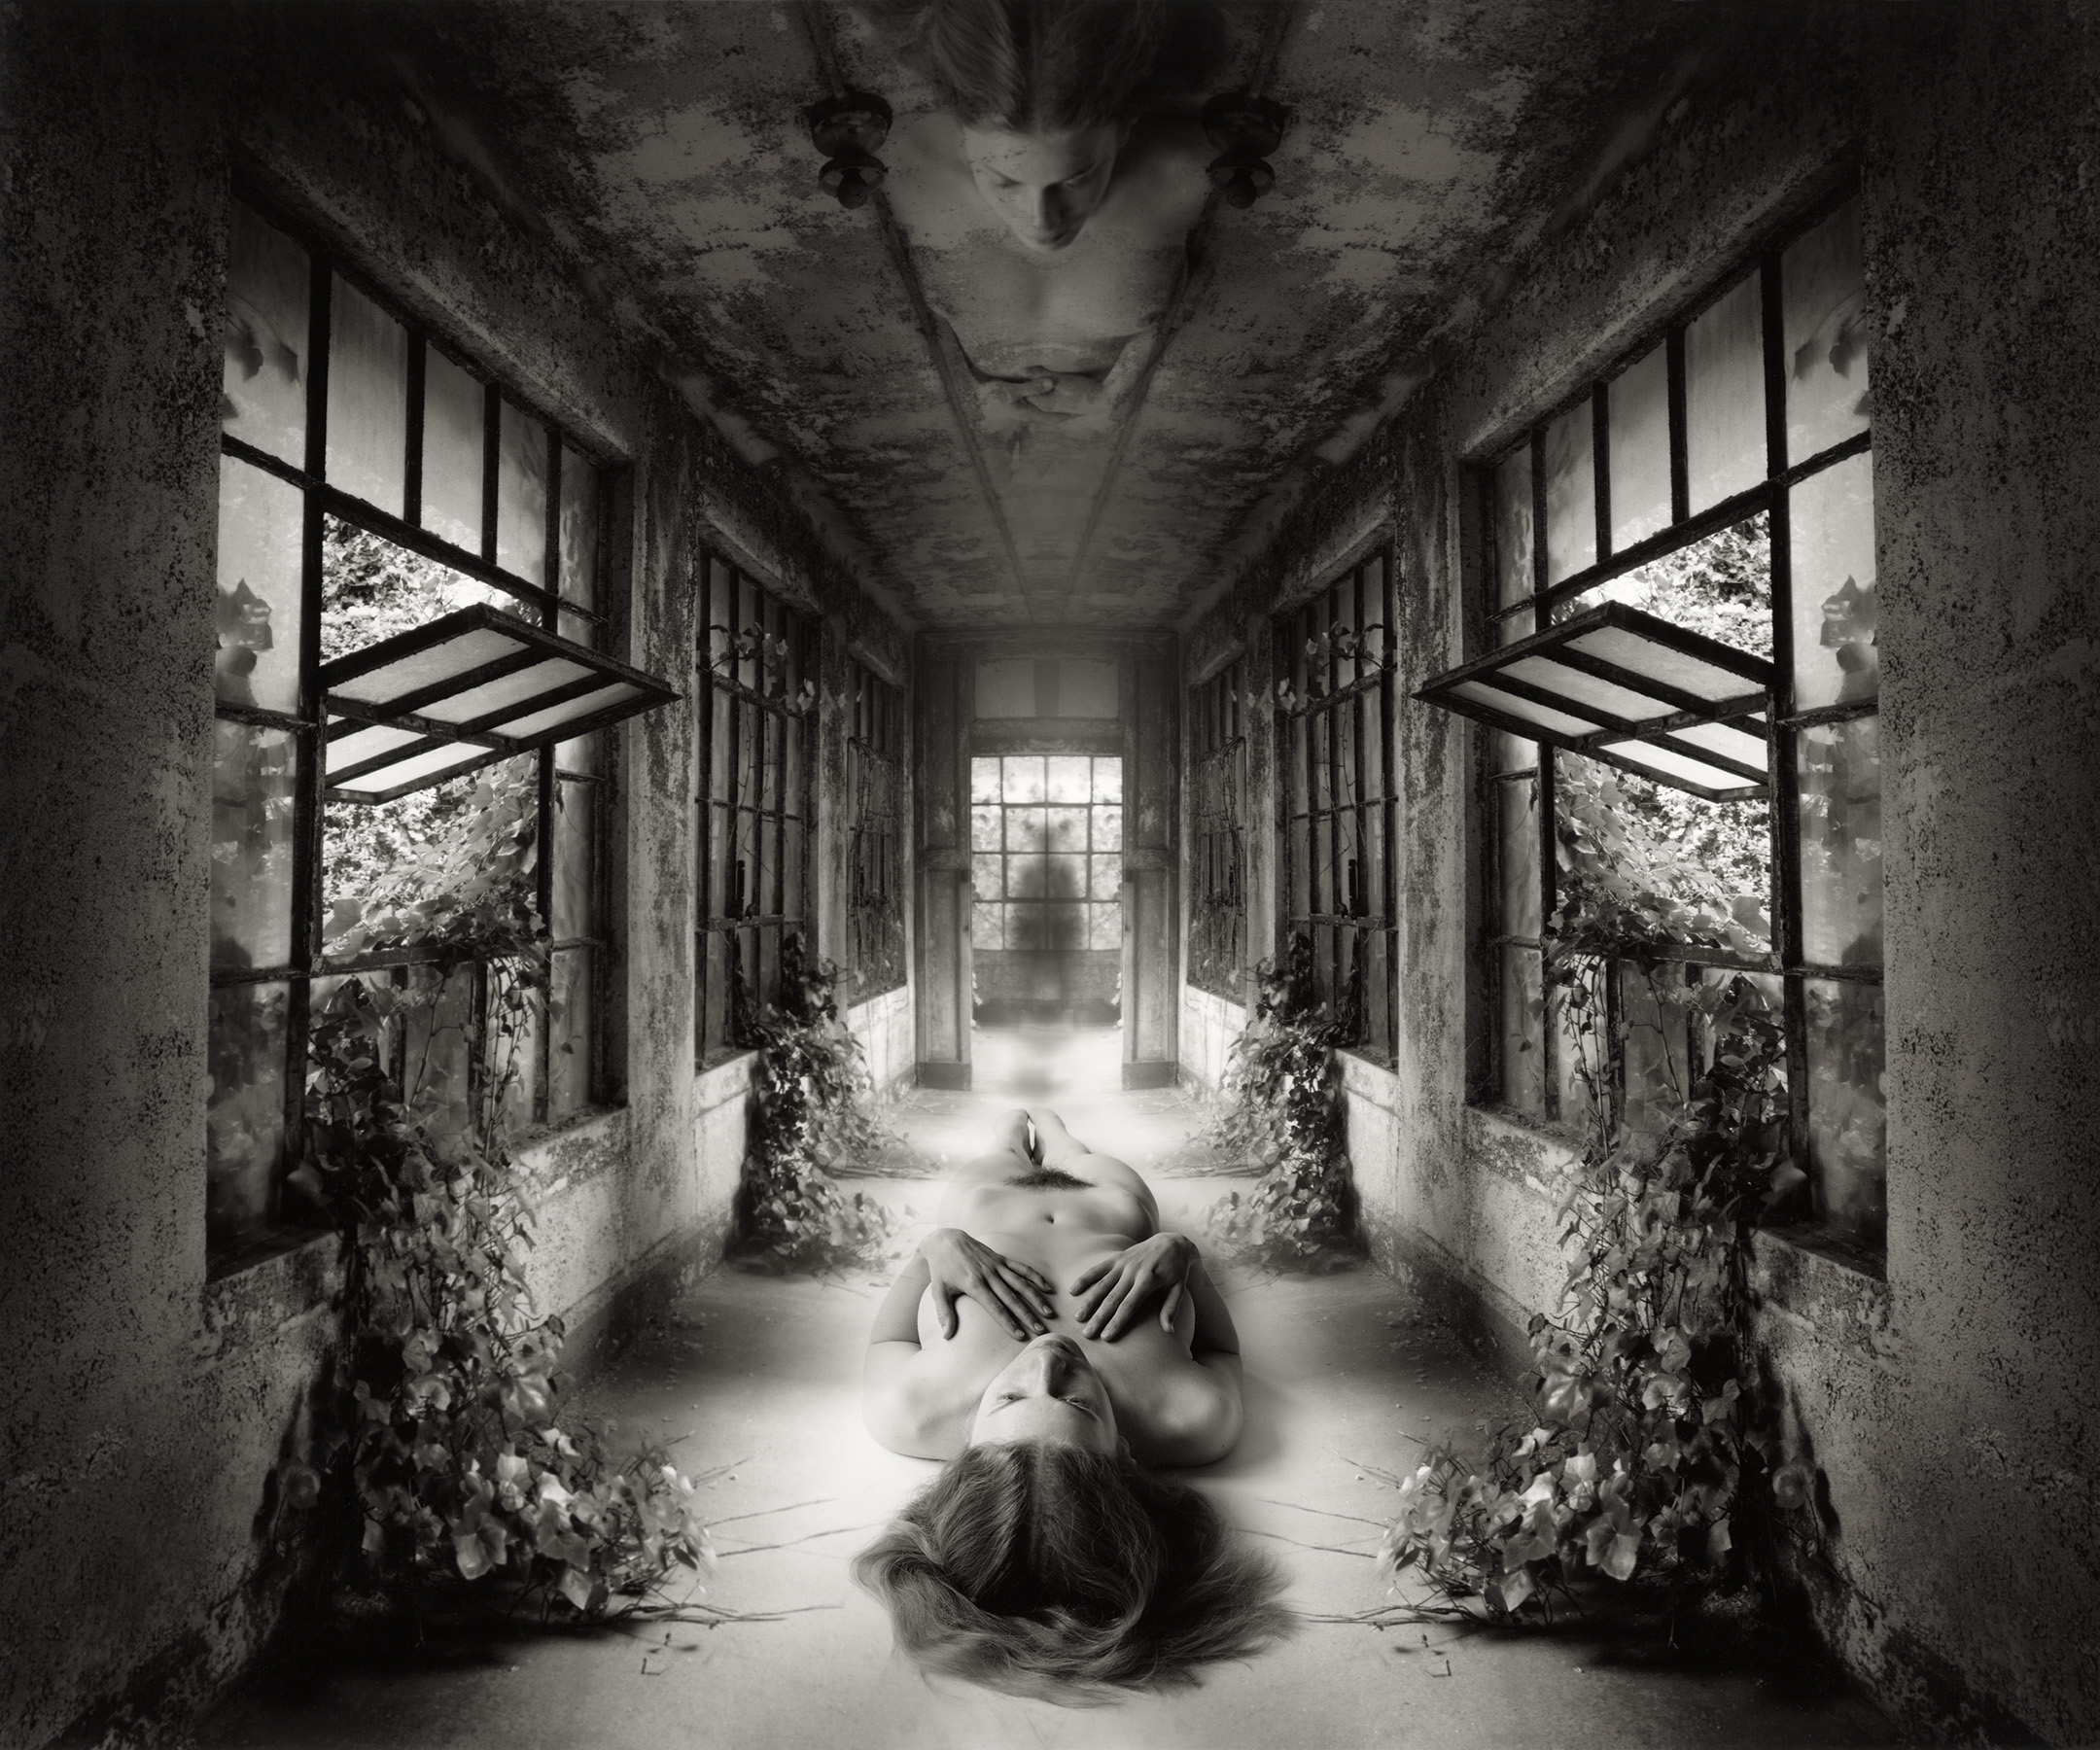 Jerry Uelsmann - Self Reflection - 2009